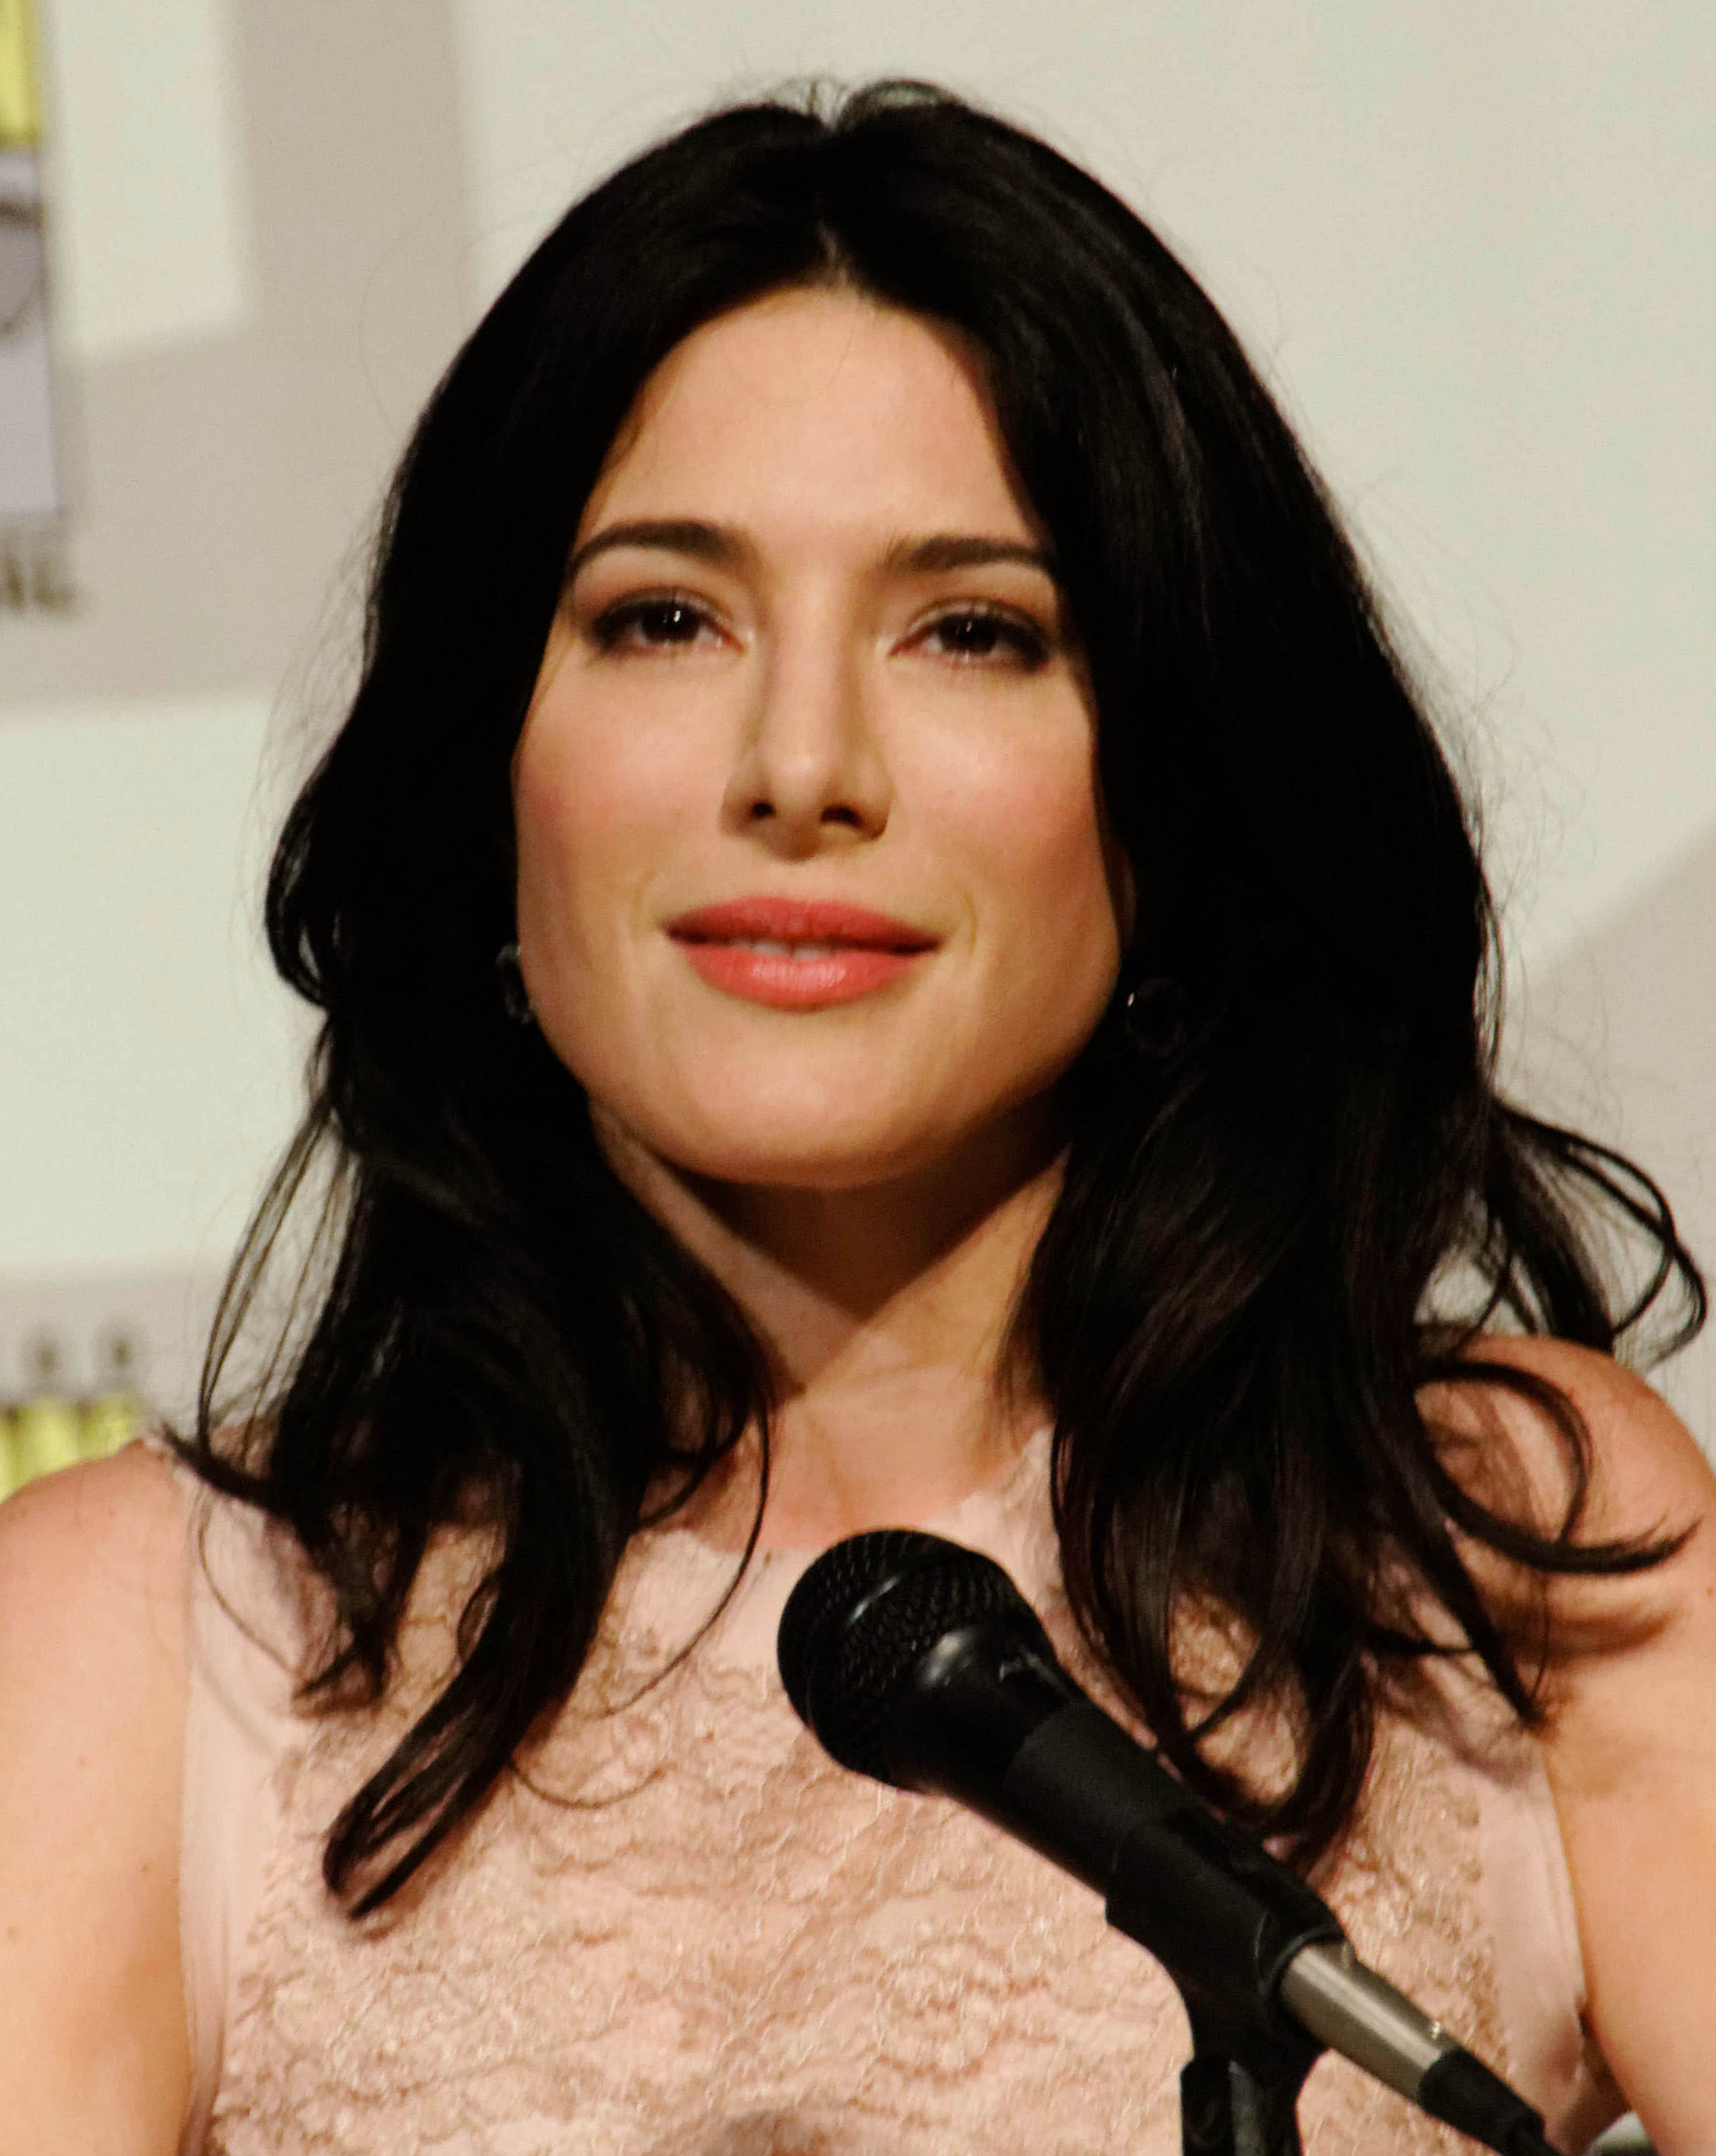 jaime murray wonder woman - photo #10